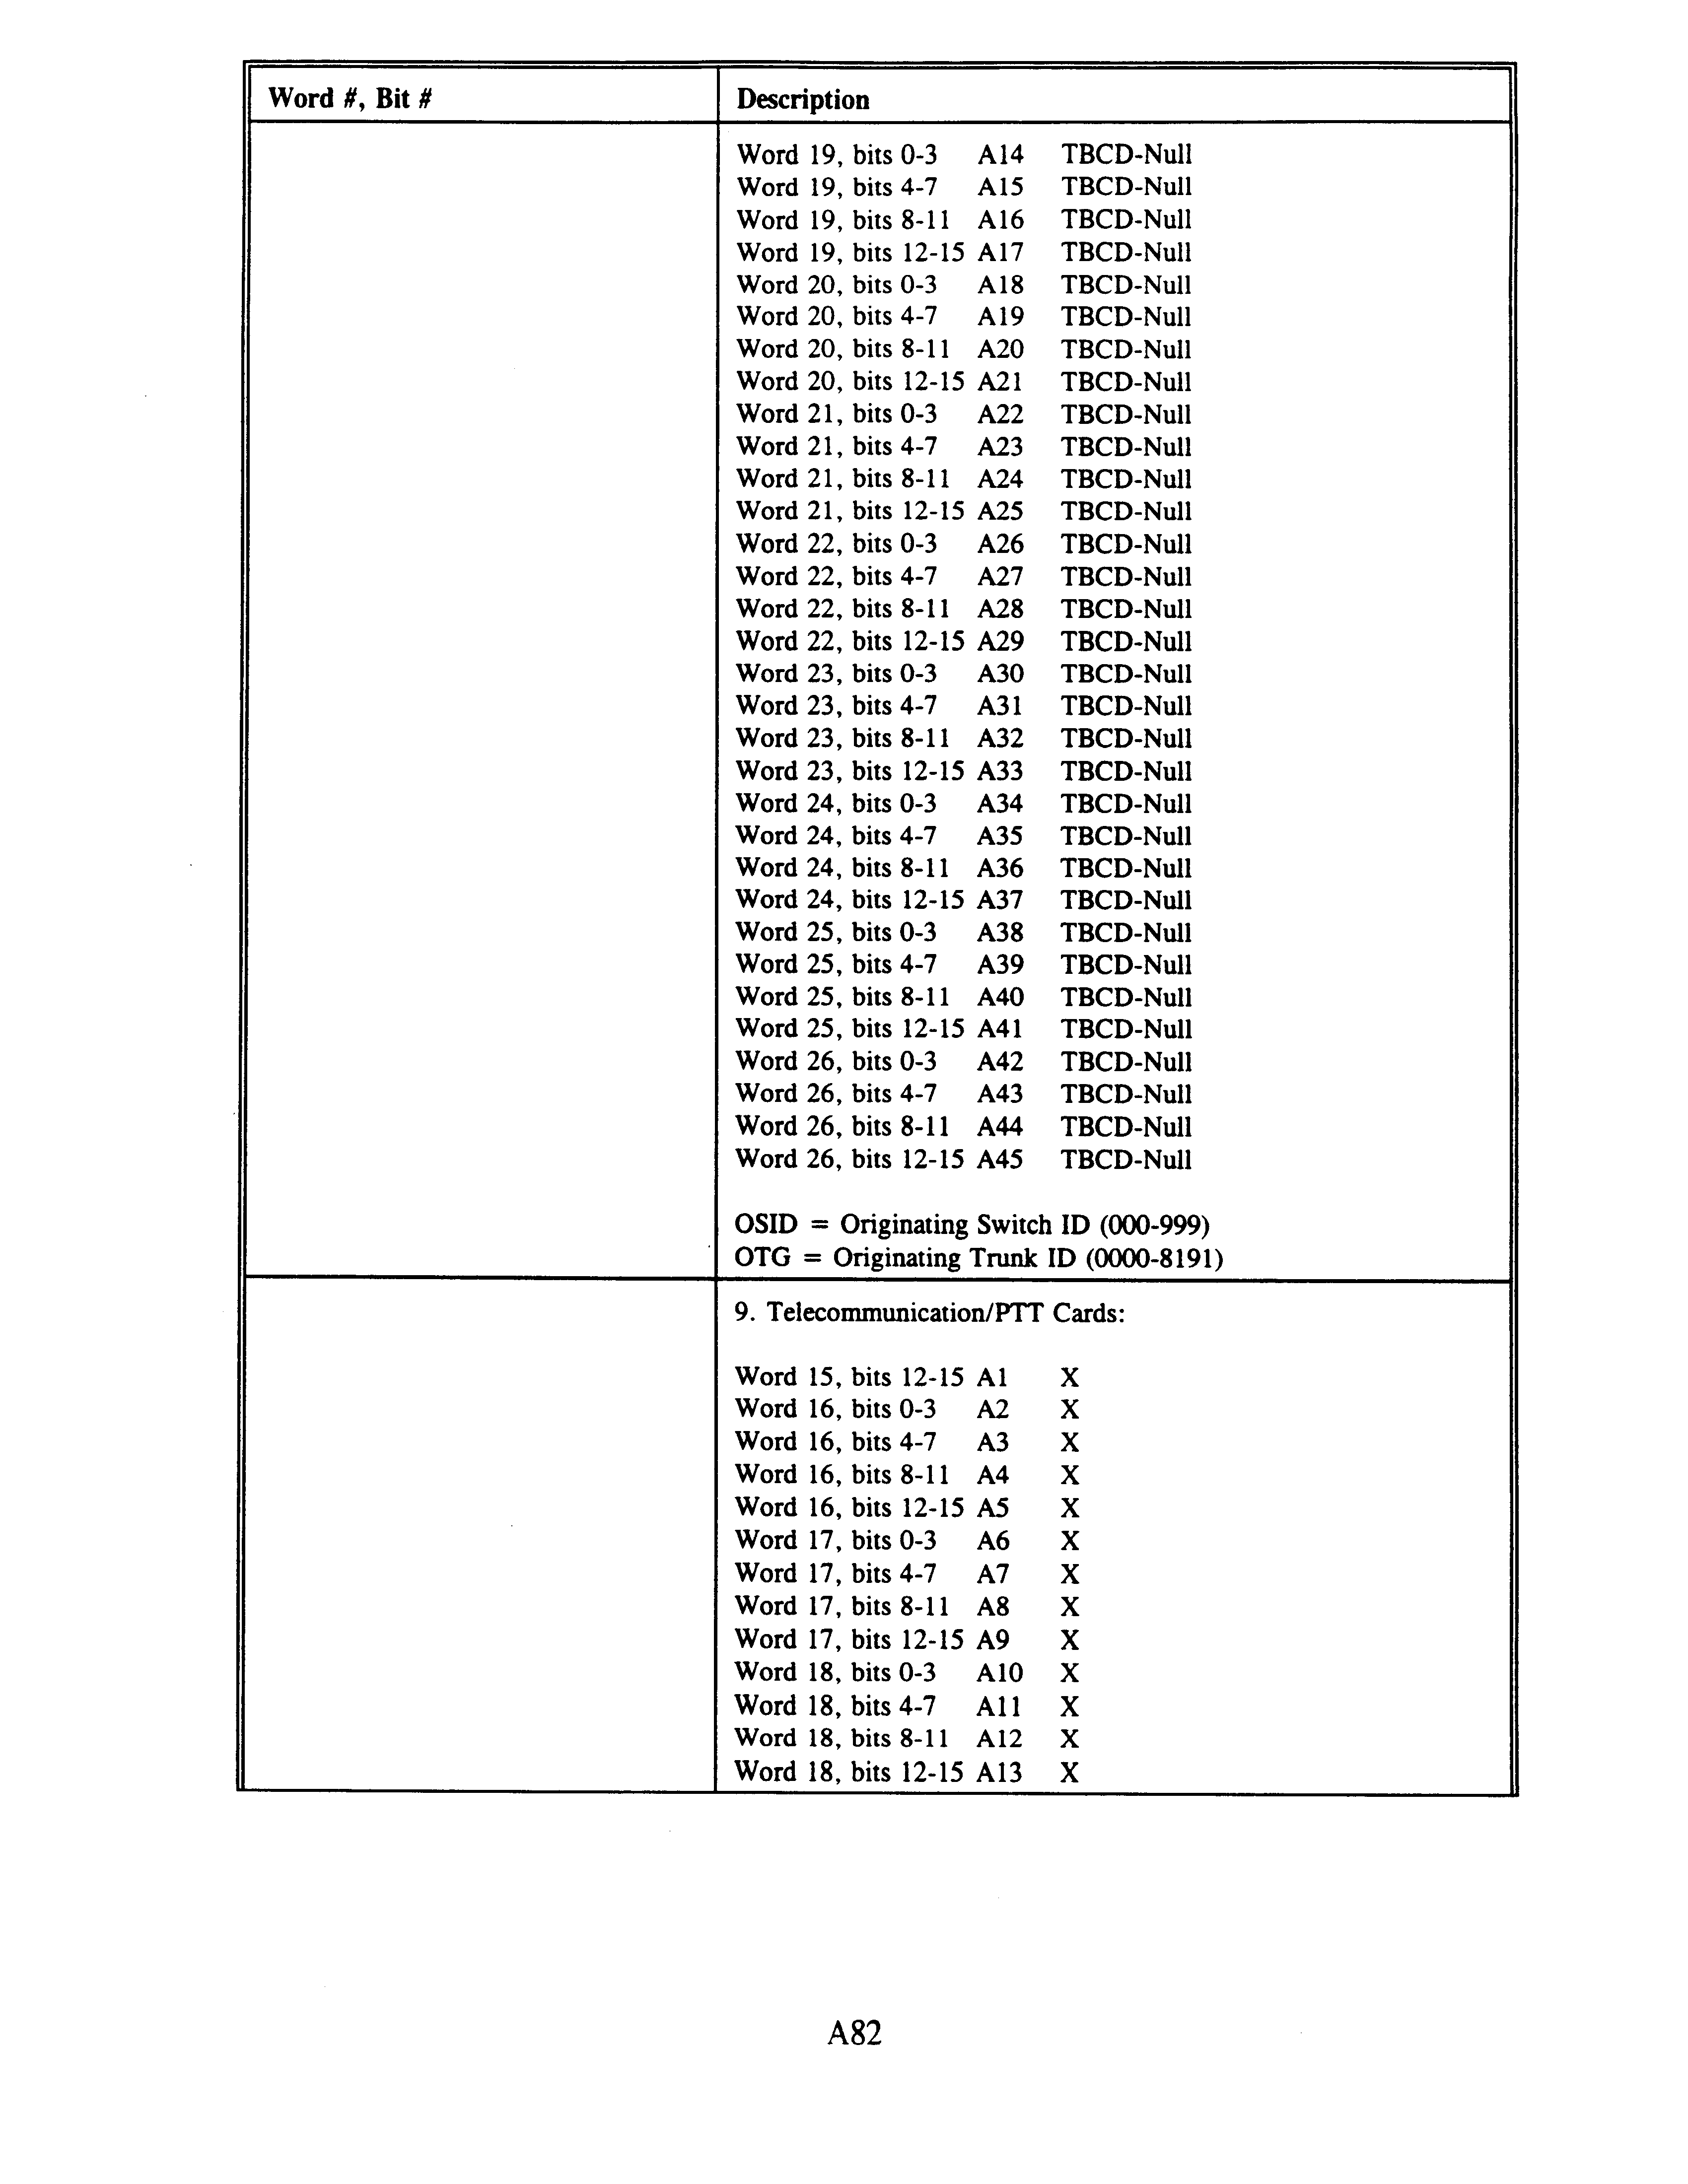 US6754181B1 - System and method for a directory service